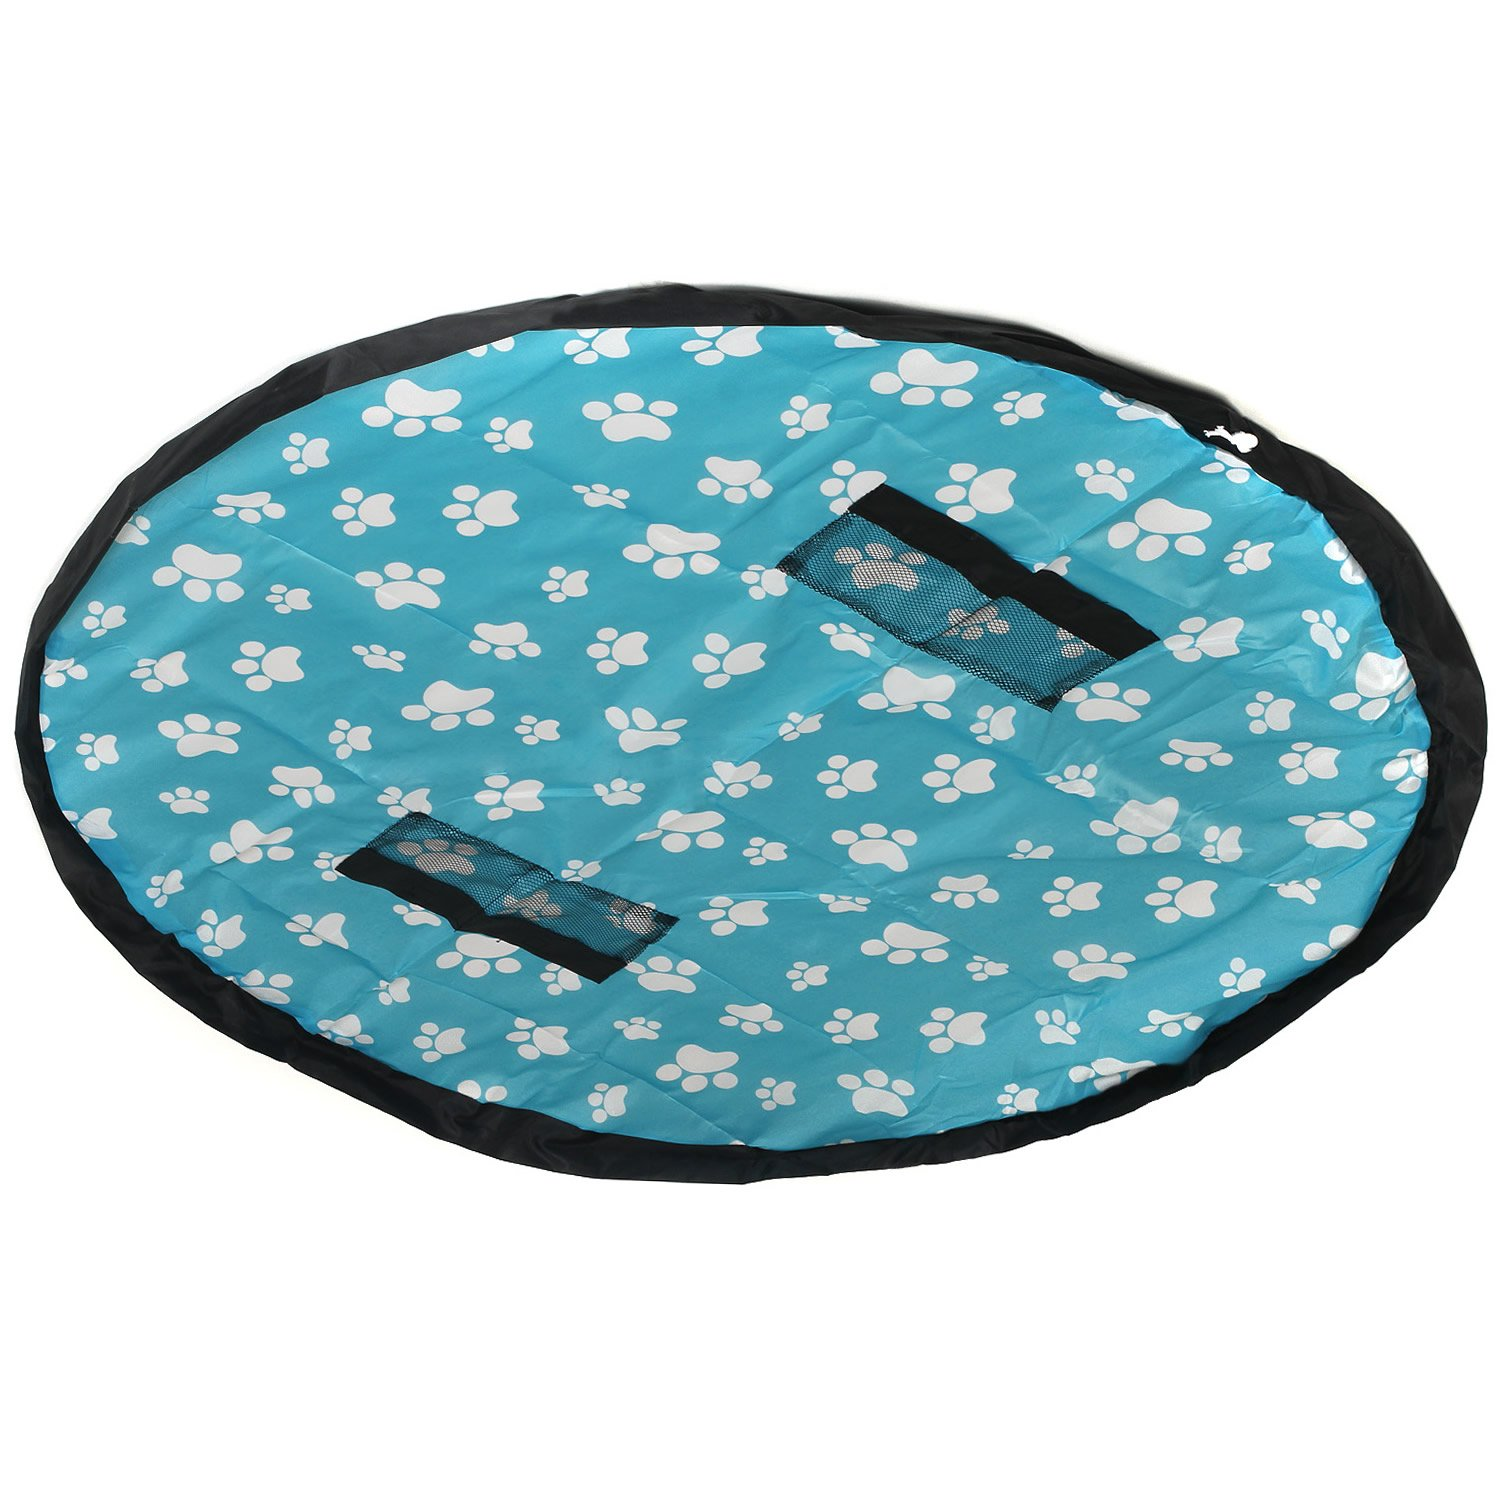 TUKA 59inch Kids Play Mat & Toy Storage Bag, 151cm Diameter Double Layers Play Mat for Play & Quick Collection & Storage of Toys such as Legos, Dupla, etc. Foldable, Waterproof, TKD4006 bluefootprint TUKAI